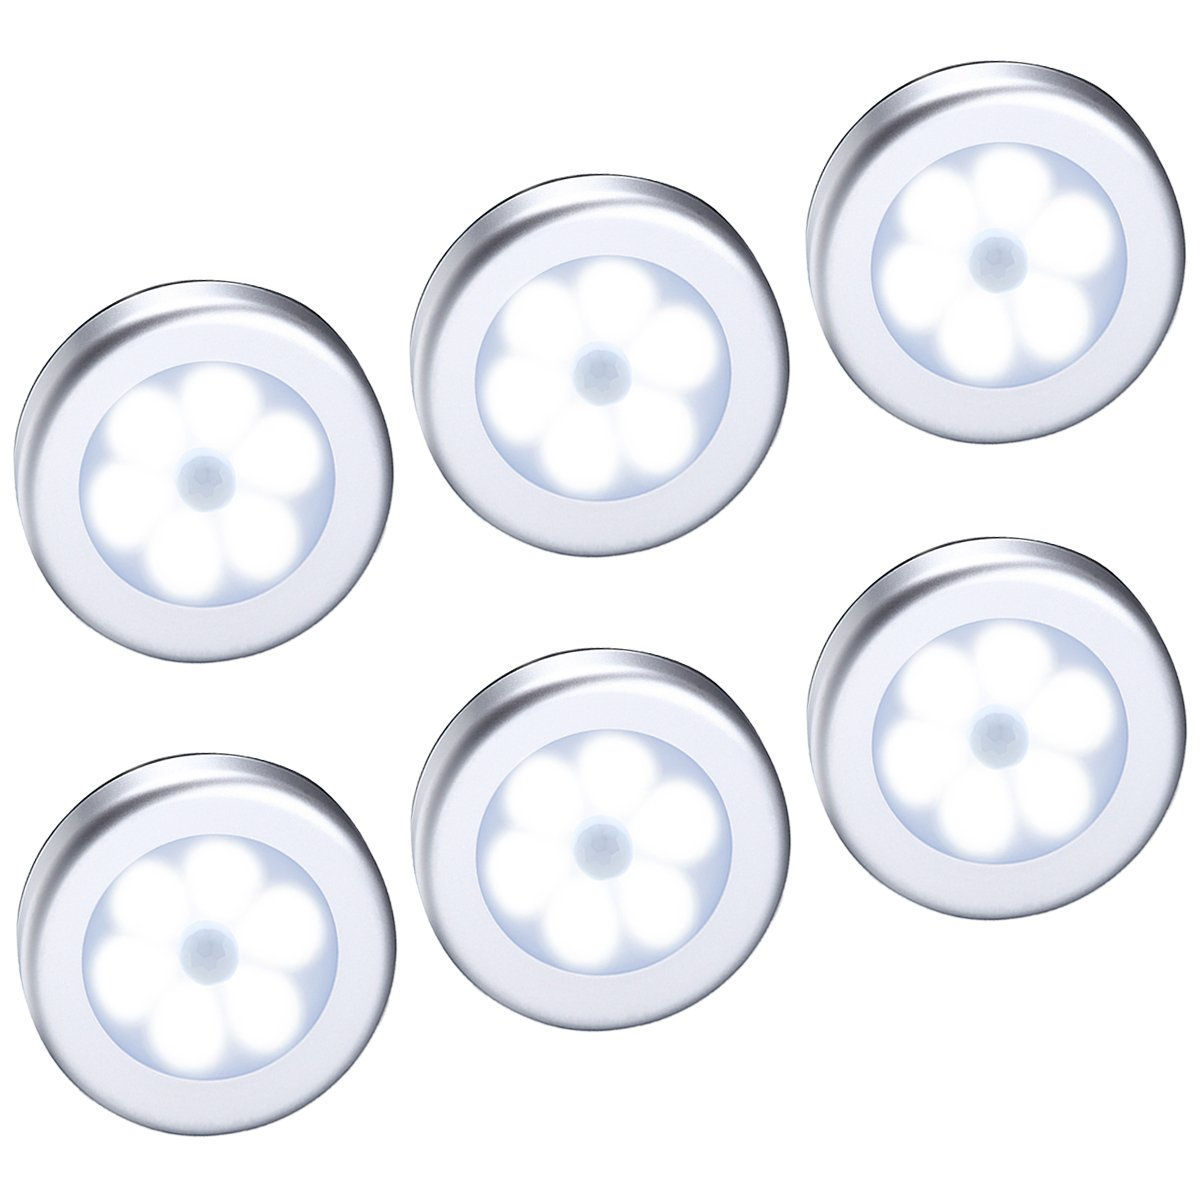 Criacr Motion Sensor Light, Under Cabinet LED Night Light, Closet Lights with 3M Adhesive Pads and magnet, Sensor Night Lights for Staircase, Cupboard, Wardrobe, Closet, Bedroom, Kitchen, etc. (6 LED, 6 Pack) -Silver